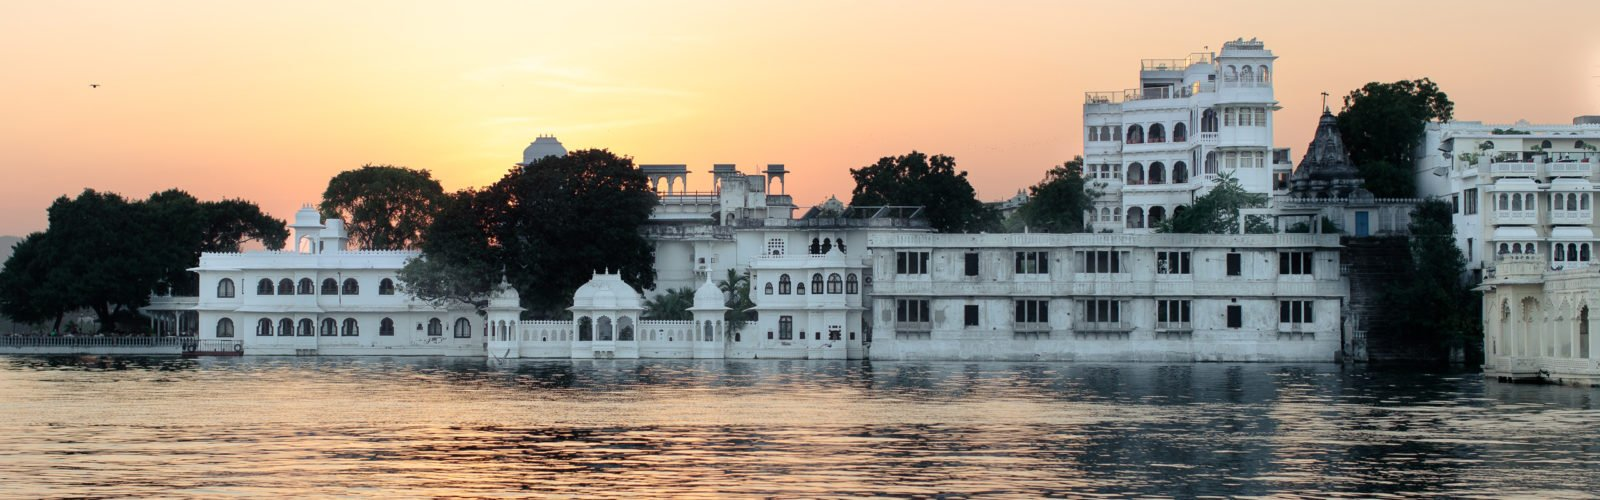 lucy-laucht-udaipur-palace-india